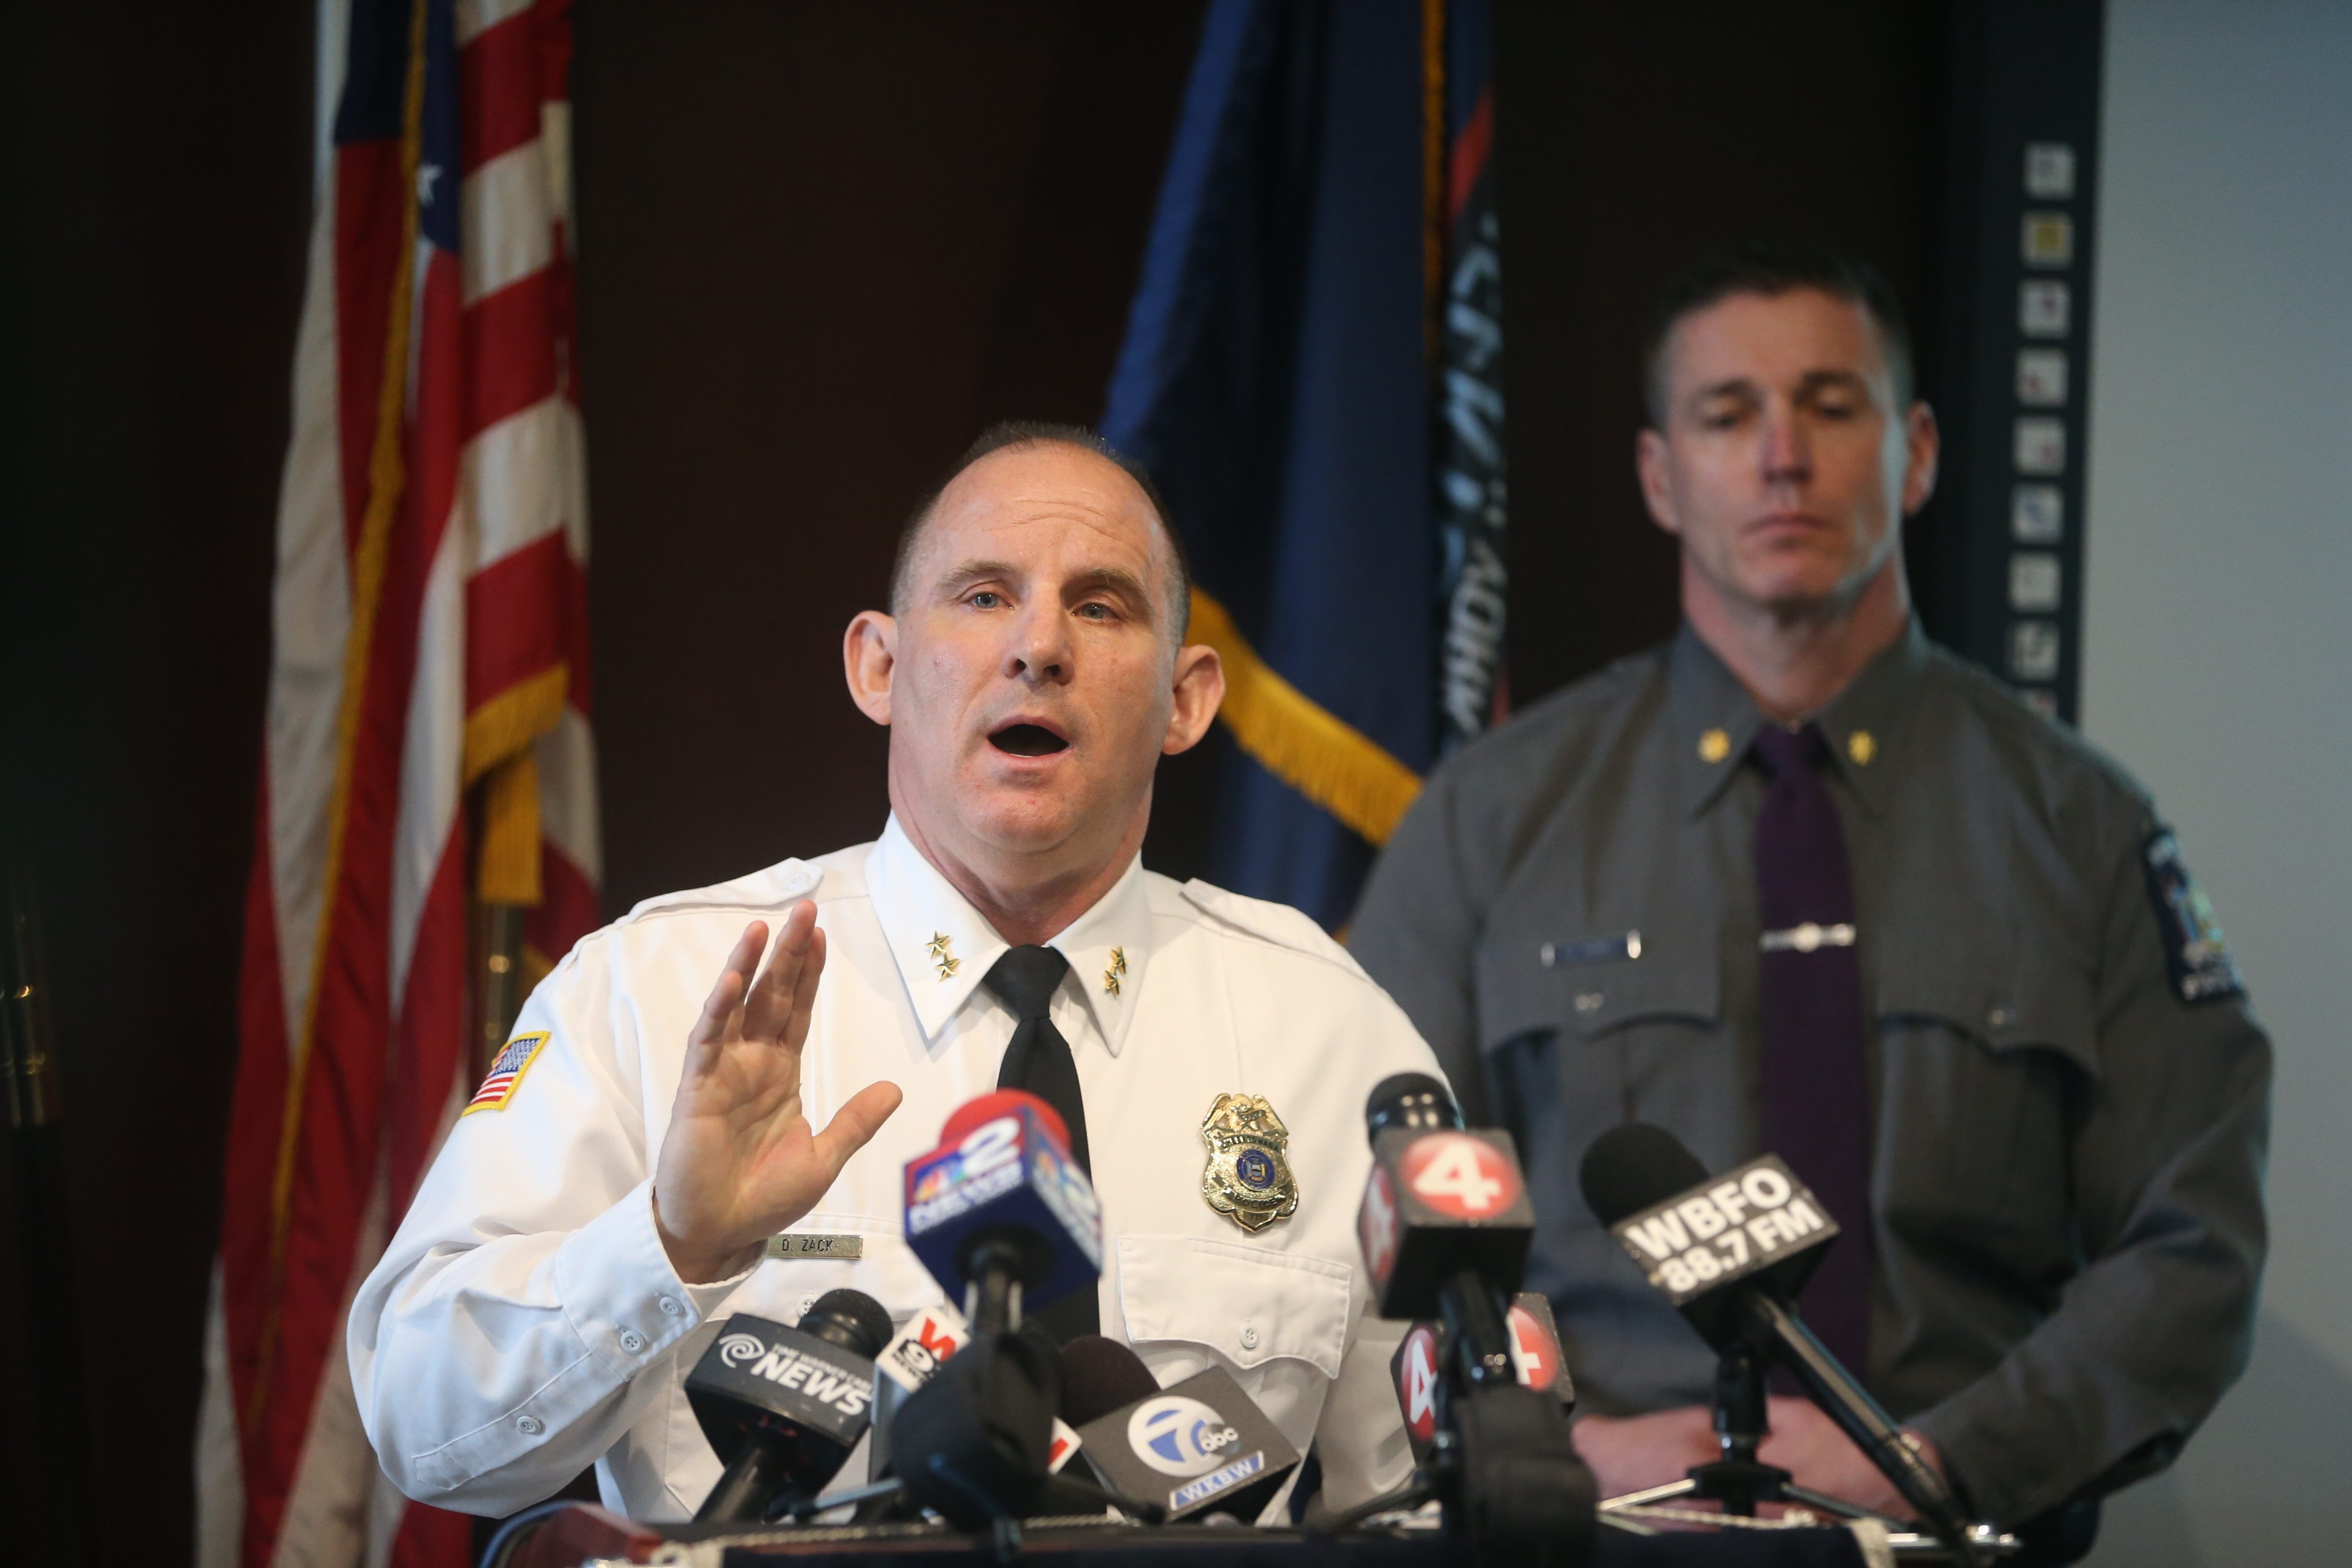 Cheektowaga Police Chief David Zack speaks at a news conference about the fatal shooting of a Java man by a police officer. (John Hickey/Buffalo News)